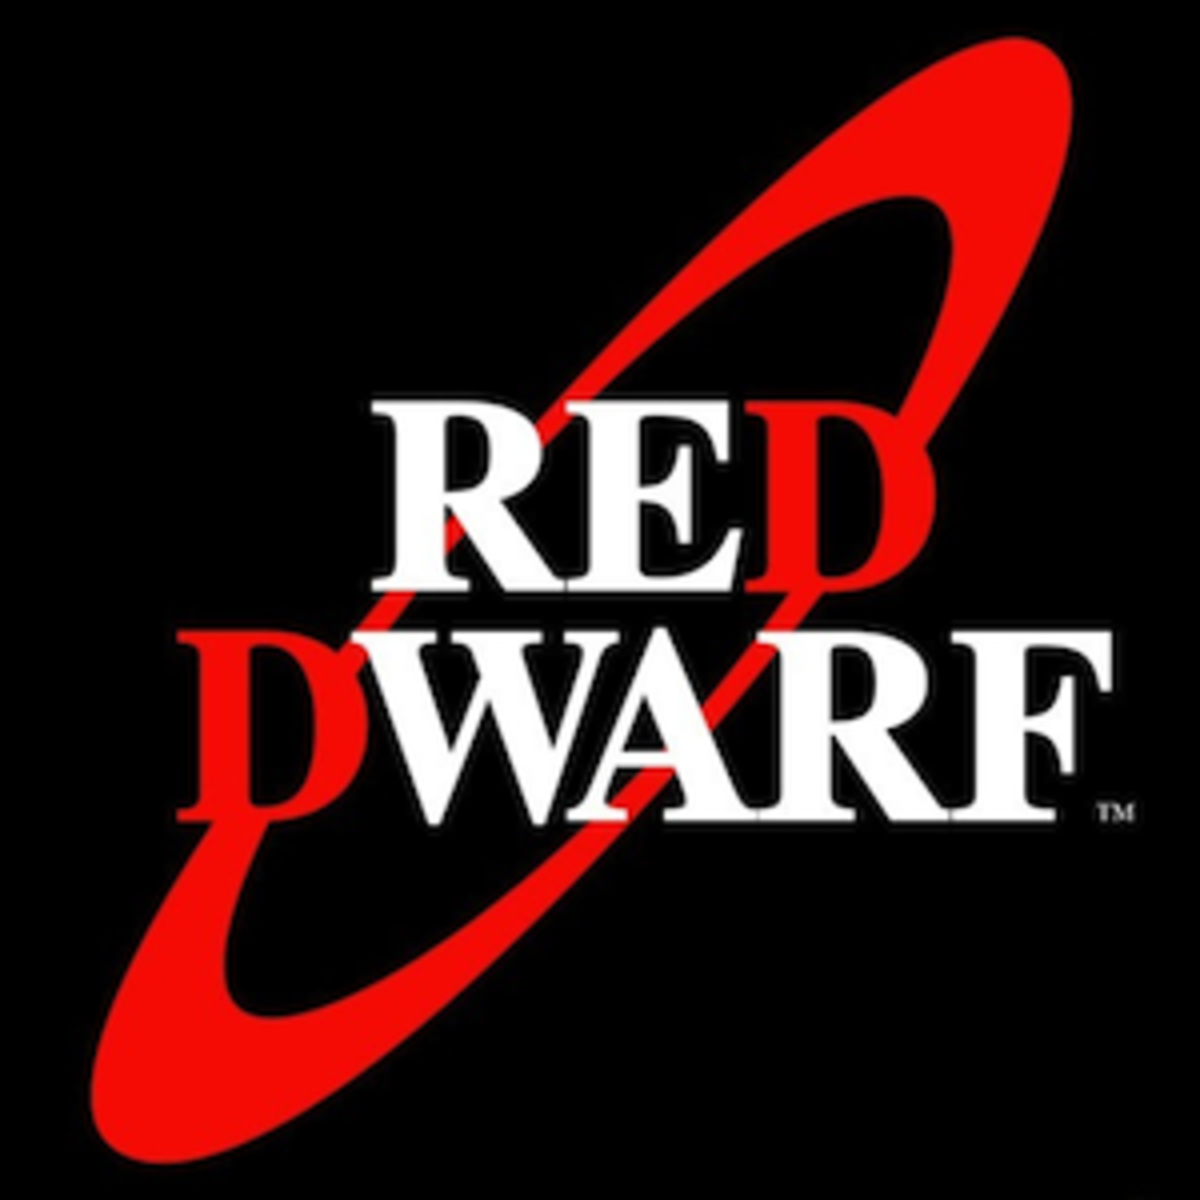 Red Dwarf was a superb comedy show by the BBC